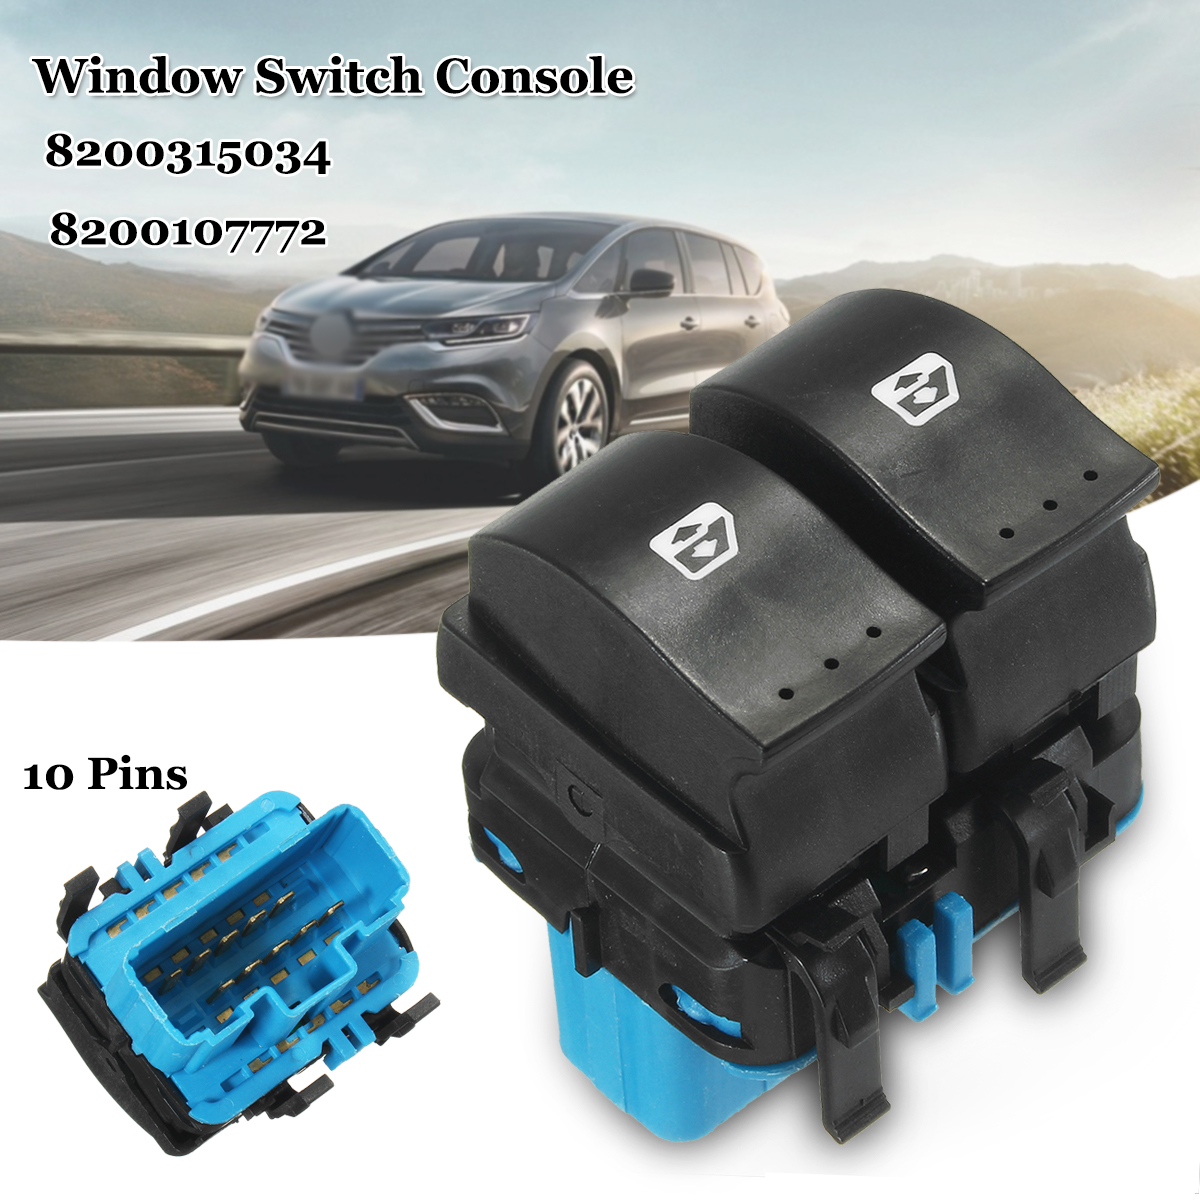 10 Pins Electric Window Switch Lifter Switches 8200107772 8200315040 For RENAULT MEGANE II 2 SCENIC II GRAND SCENIC II 2002-2014